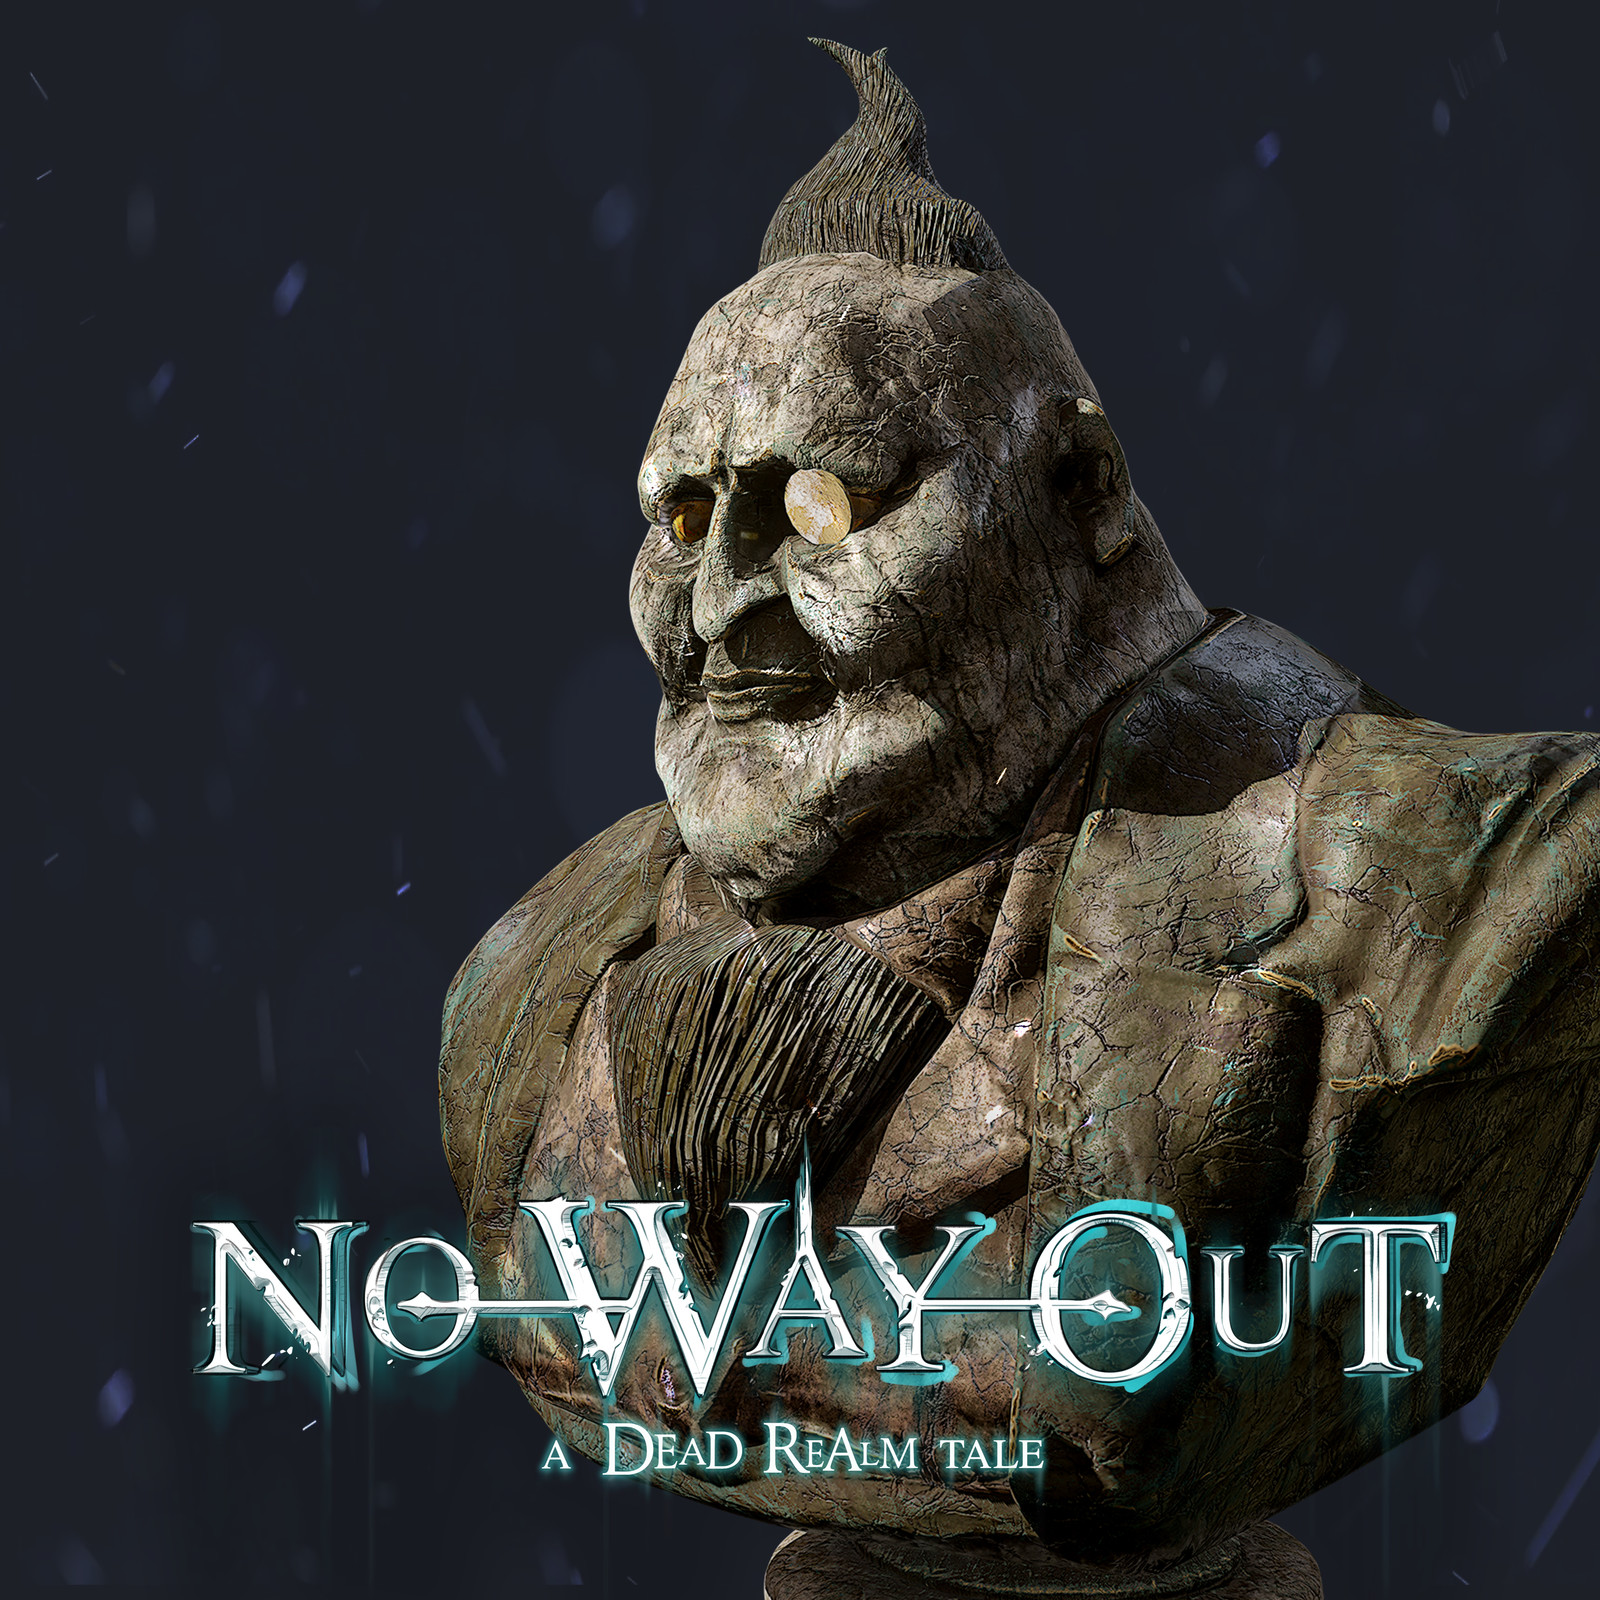 No Way Out - A Dead Realm Tale - Props - StatueBust 01